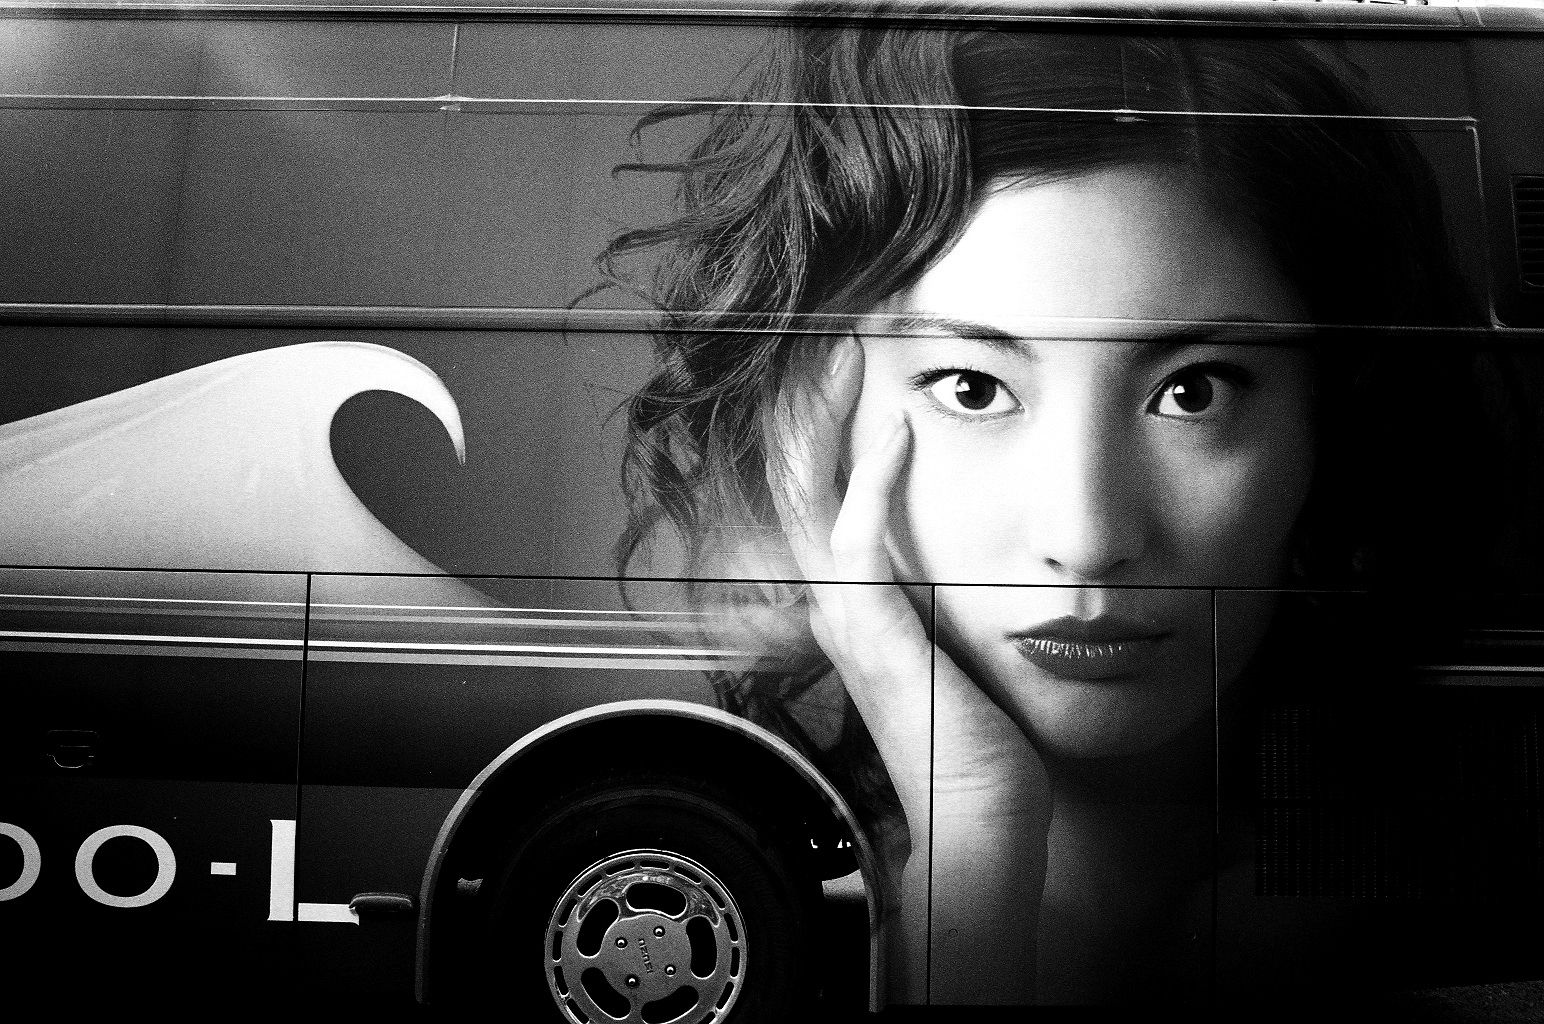 Japanese actress Takako Tokiwa painted on the bus